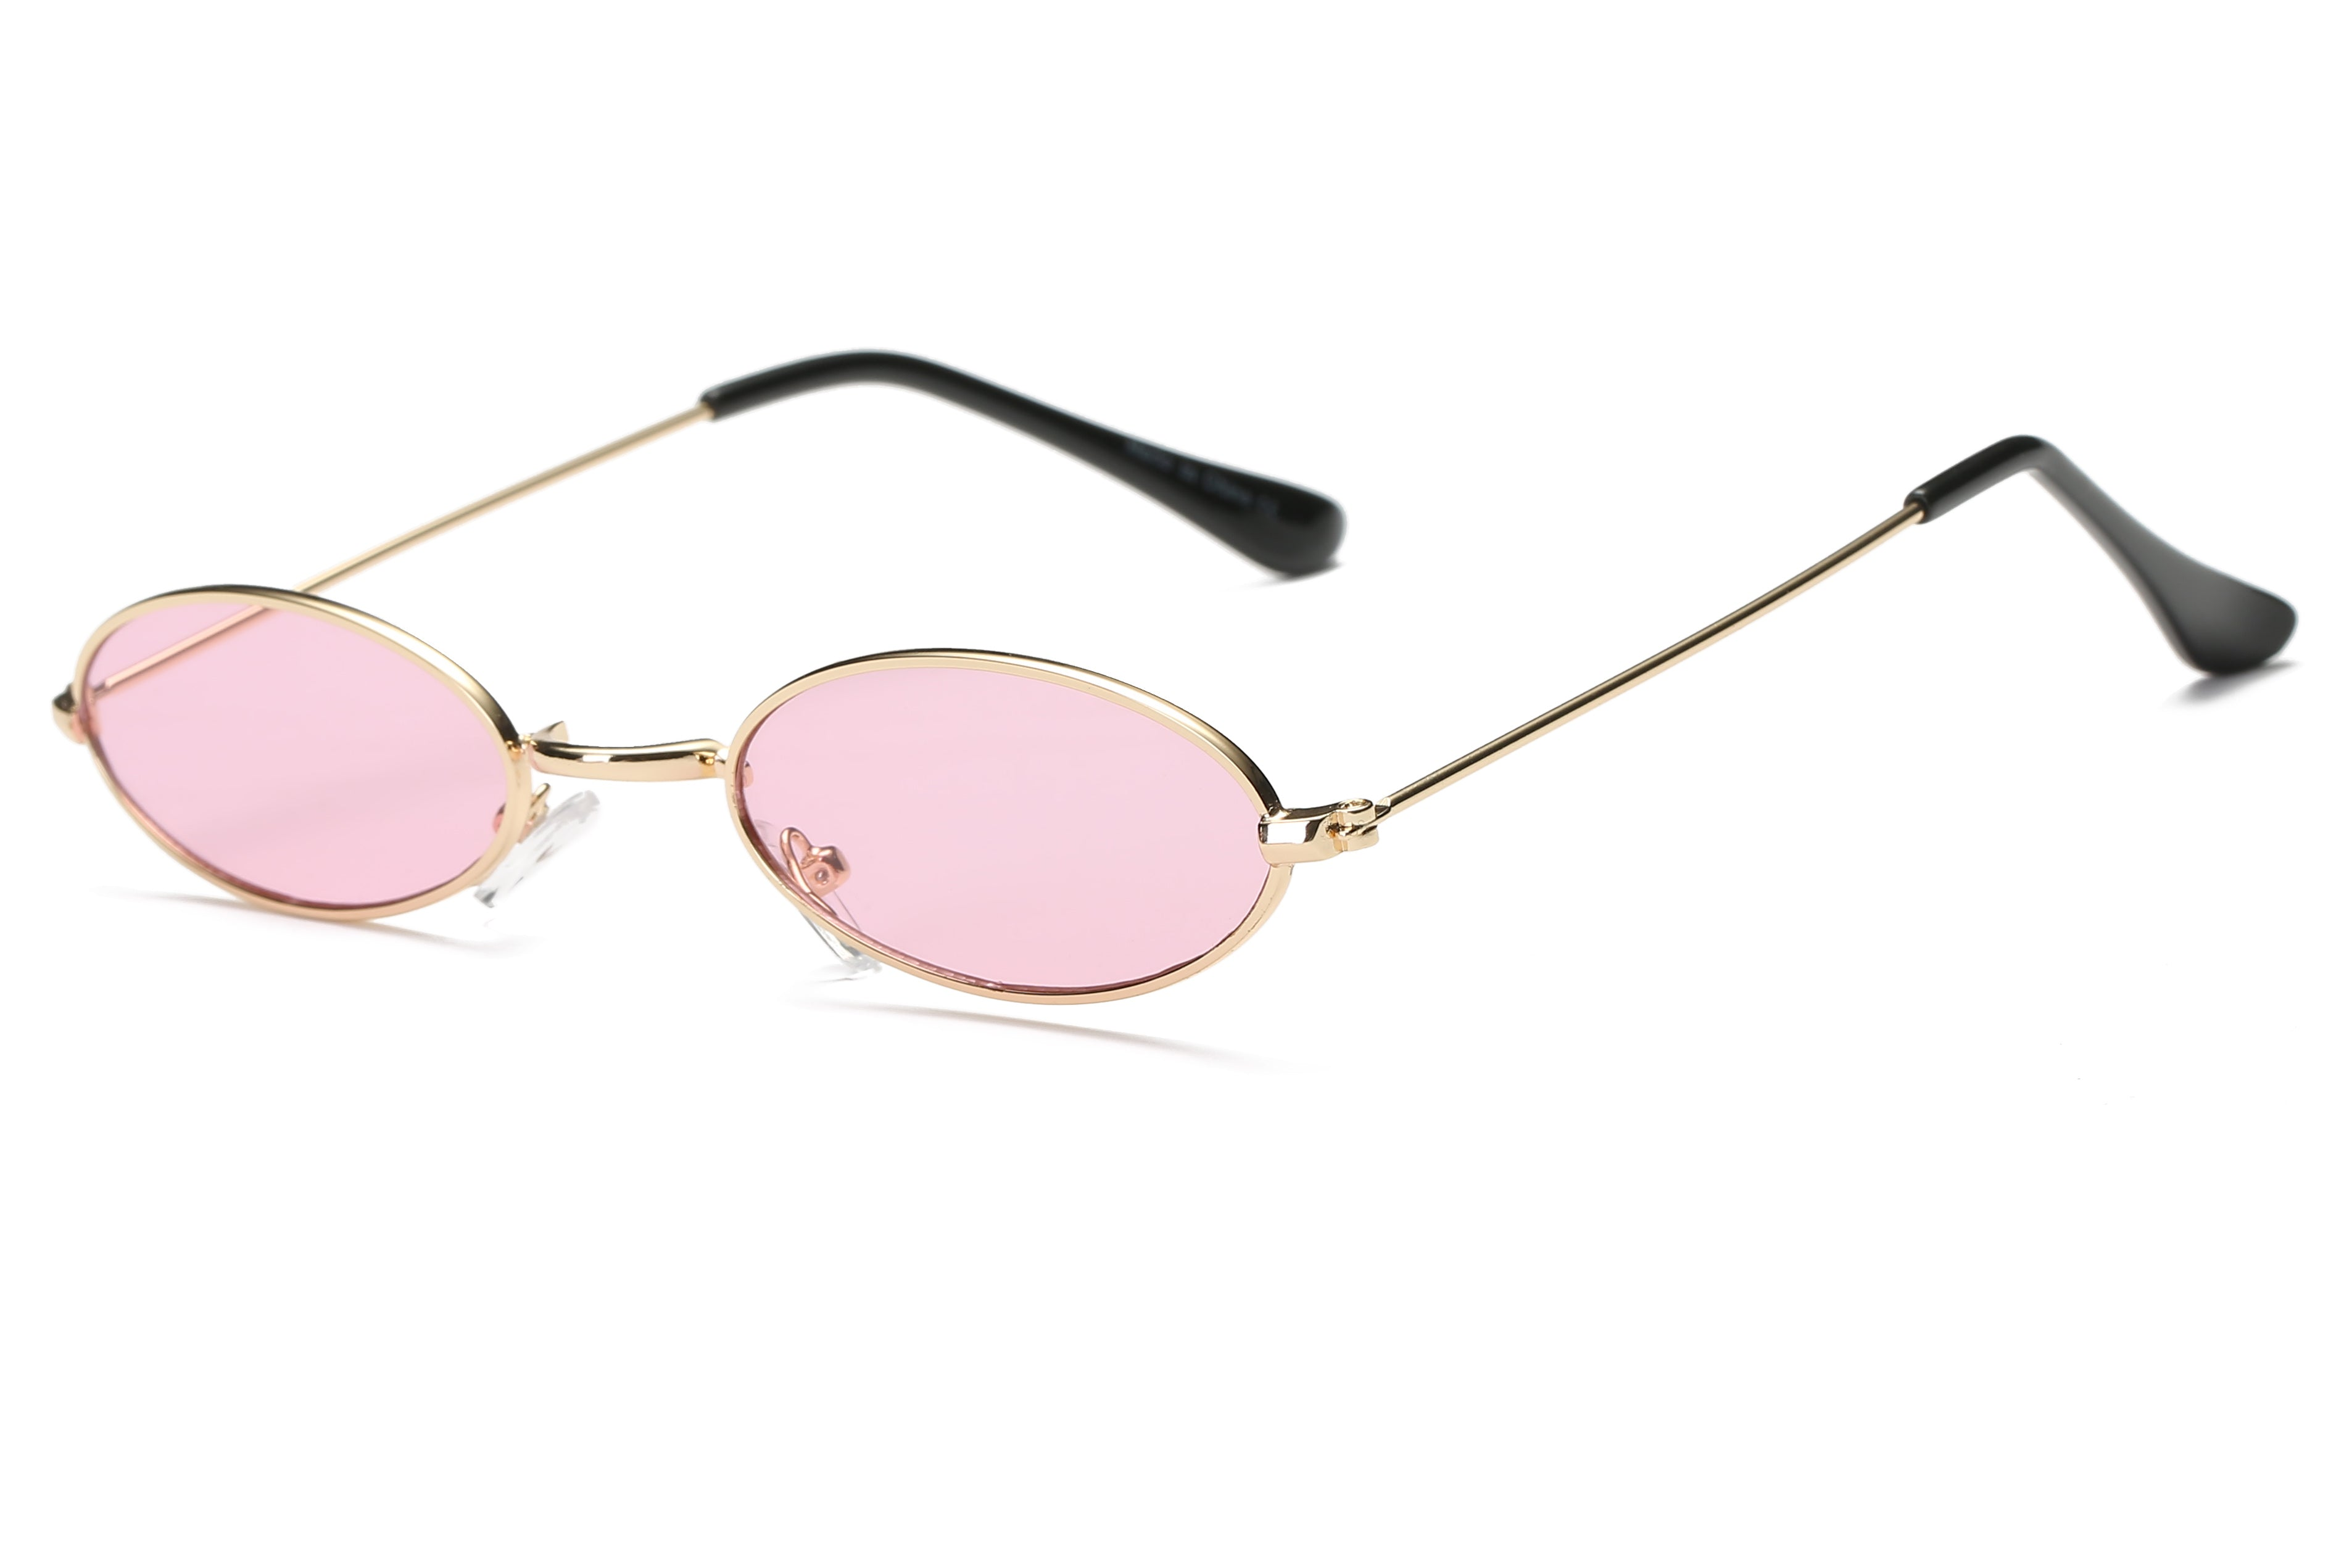 Retro Vintage Small Round Sunglasses for Men and Women - Pink